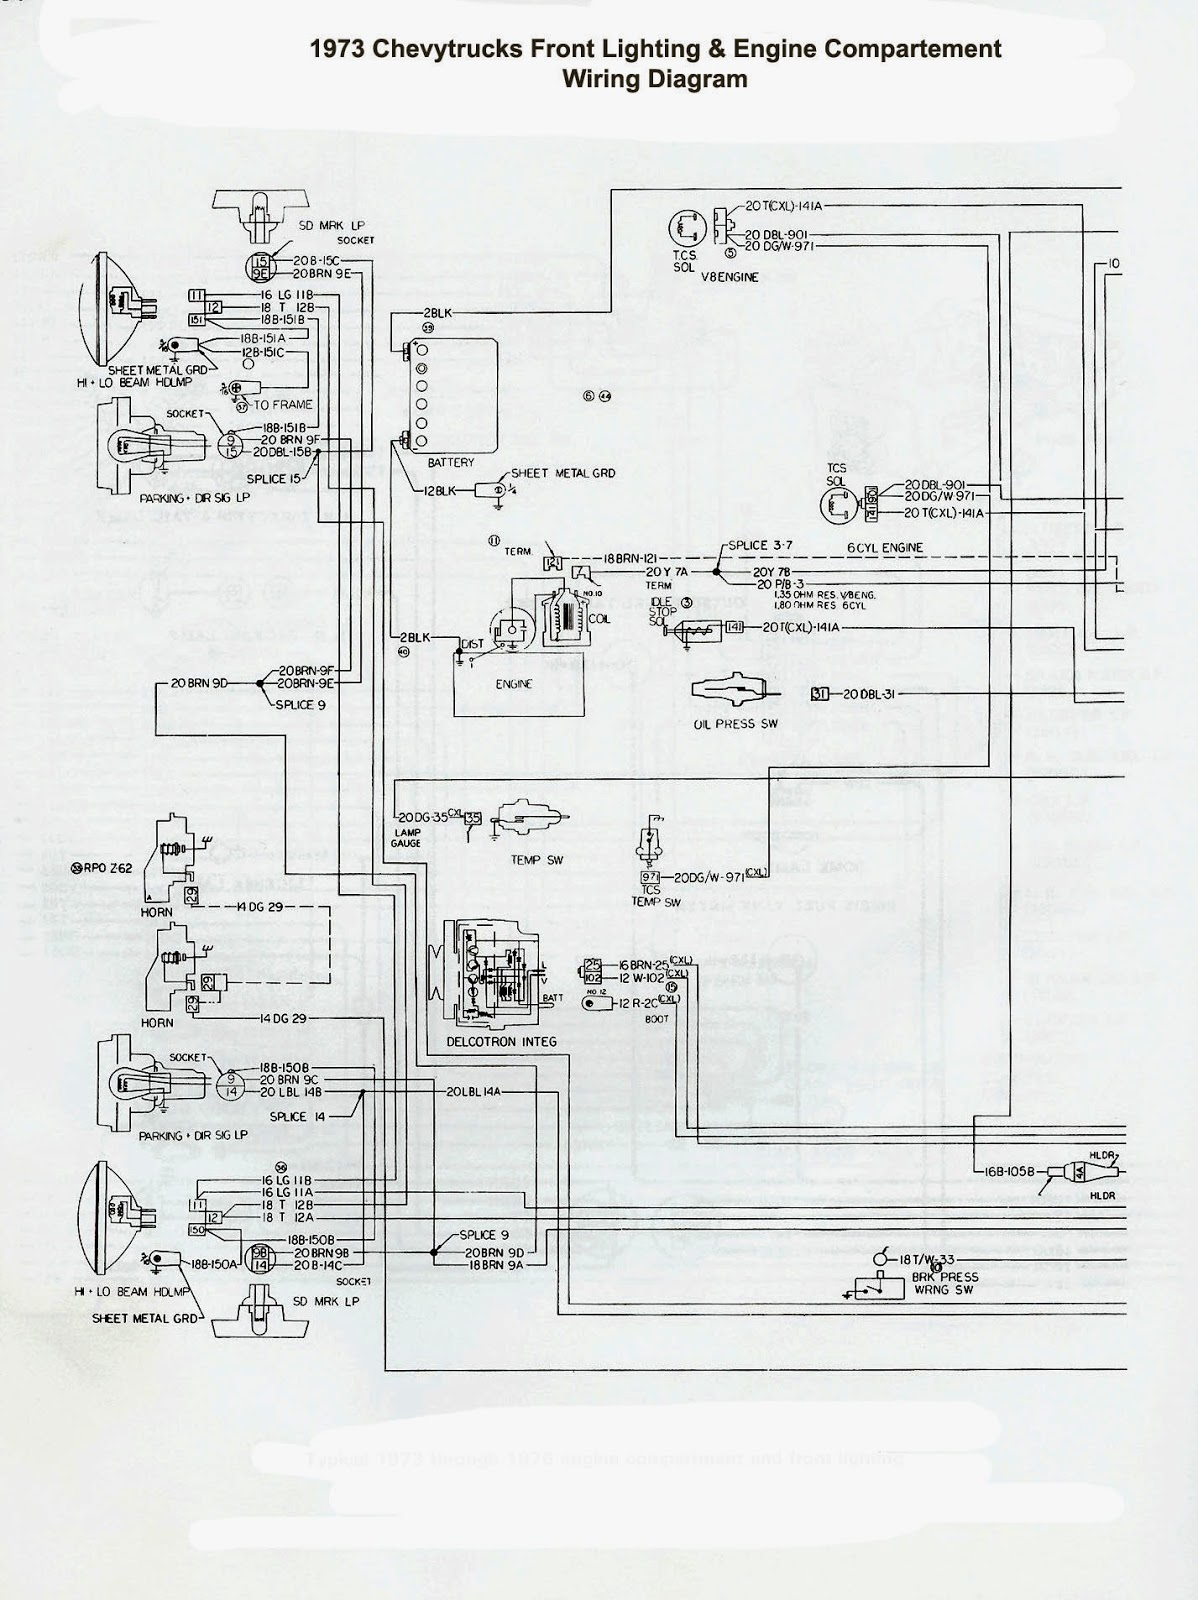 1978 Camaro Wiring Diagram Books Of Jeep Cj7 Engine For Get Free Image About